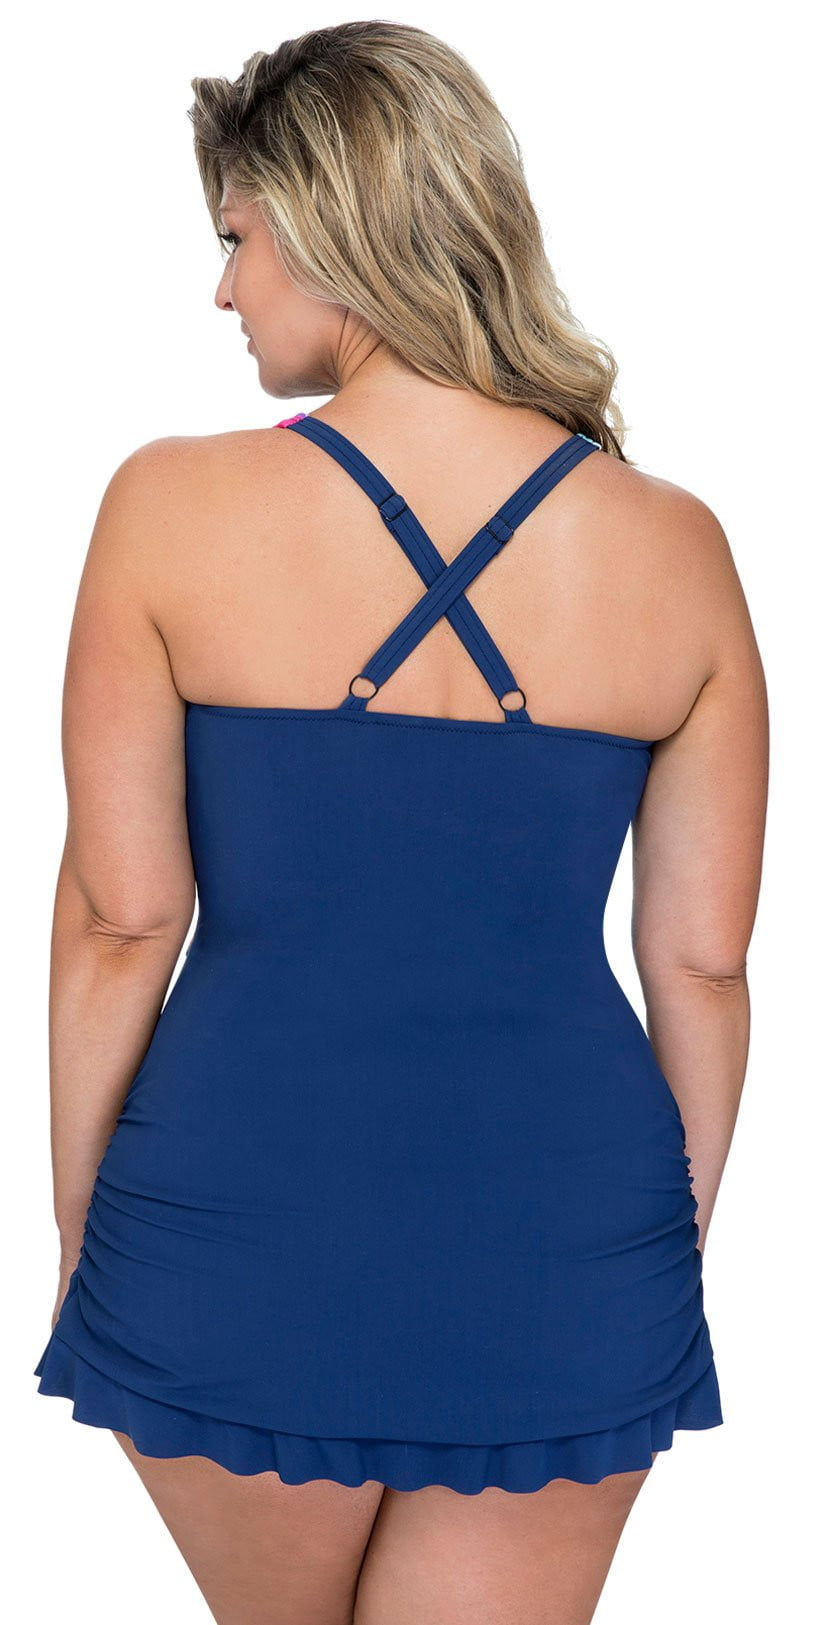 Profile by Gottex Bermuda Breeze Skirted Bottom One Piece E931 2W01 080 plus size back view